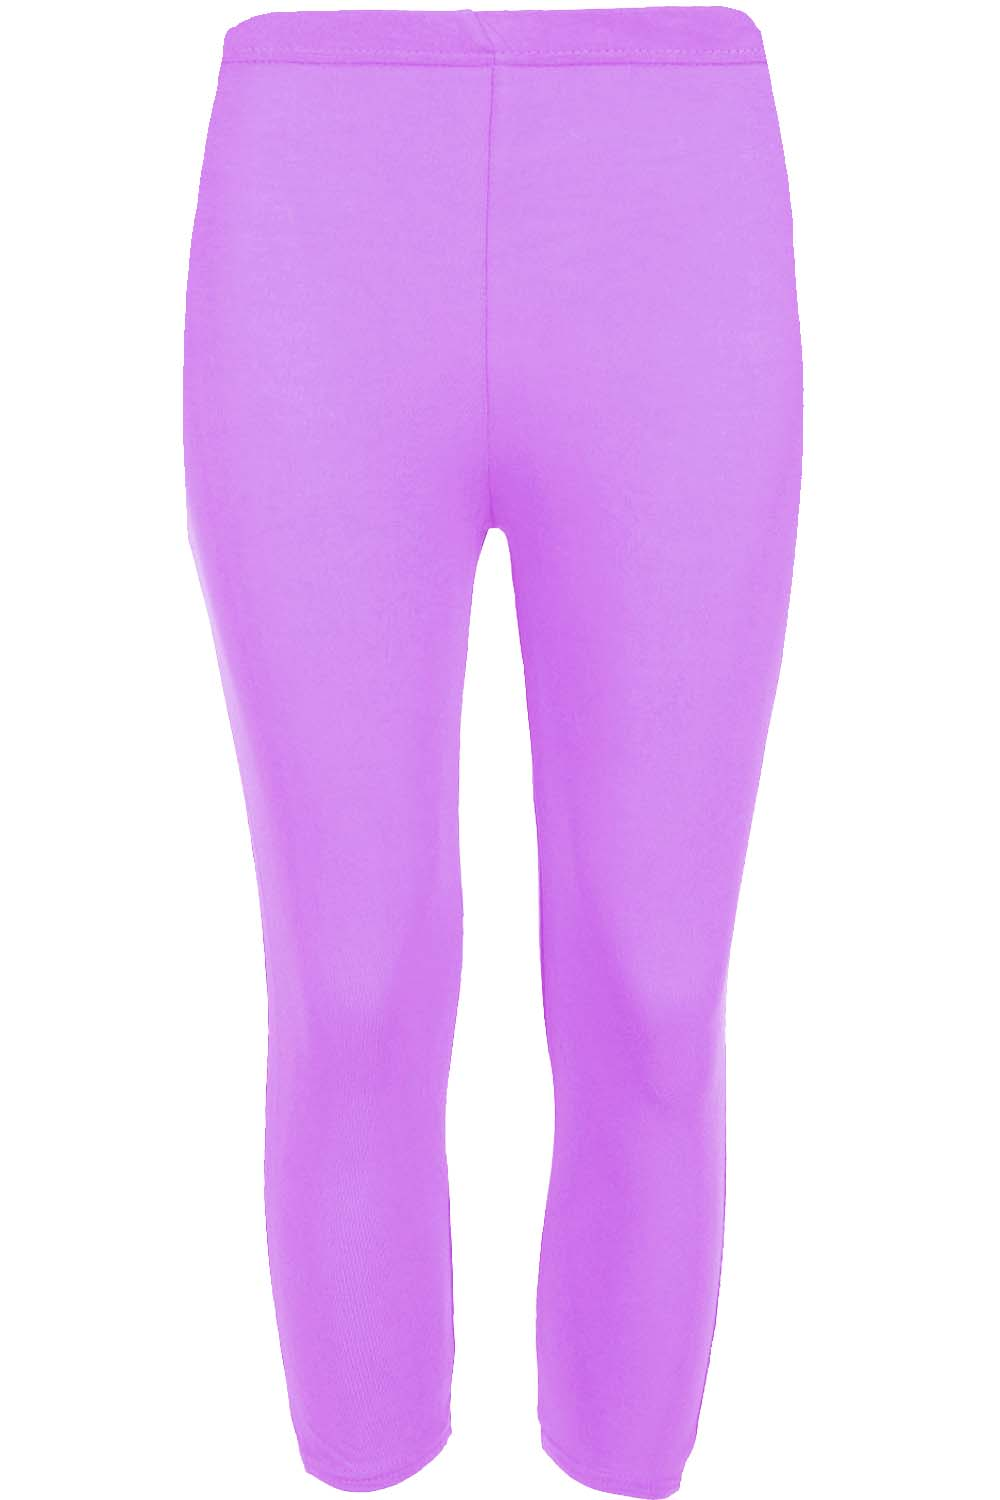 Mia 3/4 Length Plain Jersey Workout Leggings